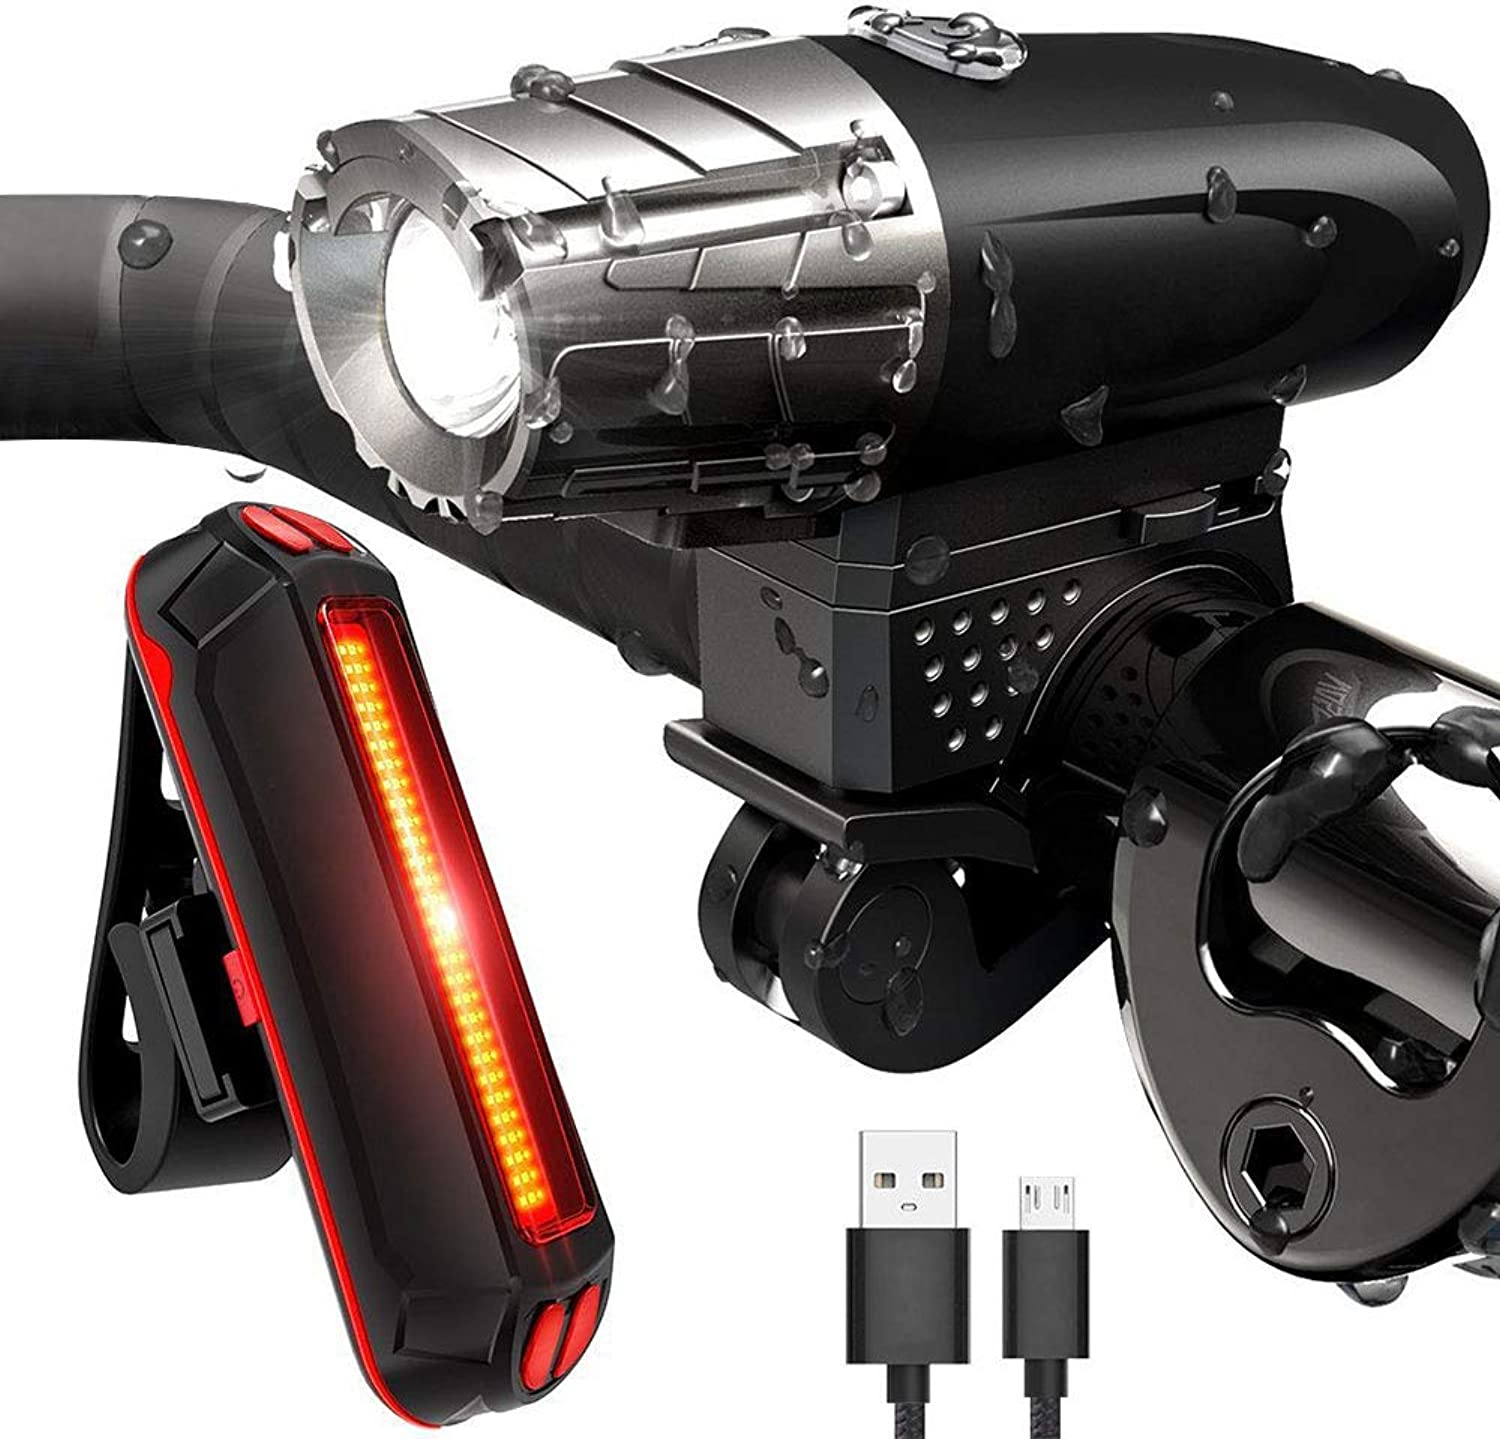 Efanr USB Rechargeable Bike Flashlight Set, 4 Modes Bicycle Front Headlight and Rear Tail Light, Super Bright with 360 Degree redating Quick Release